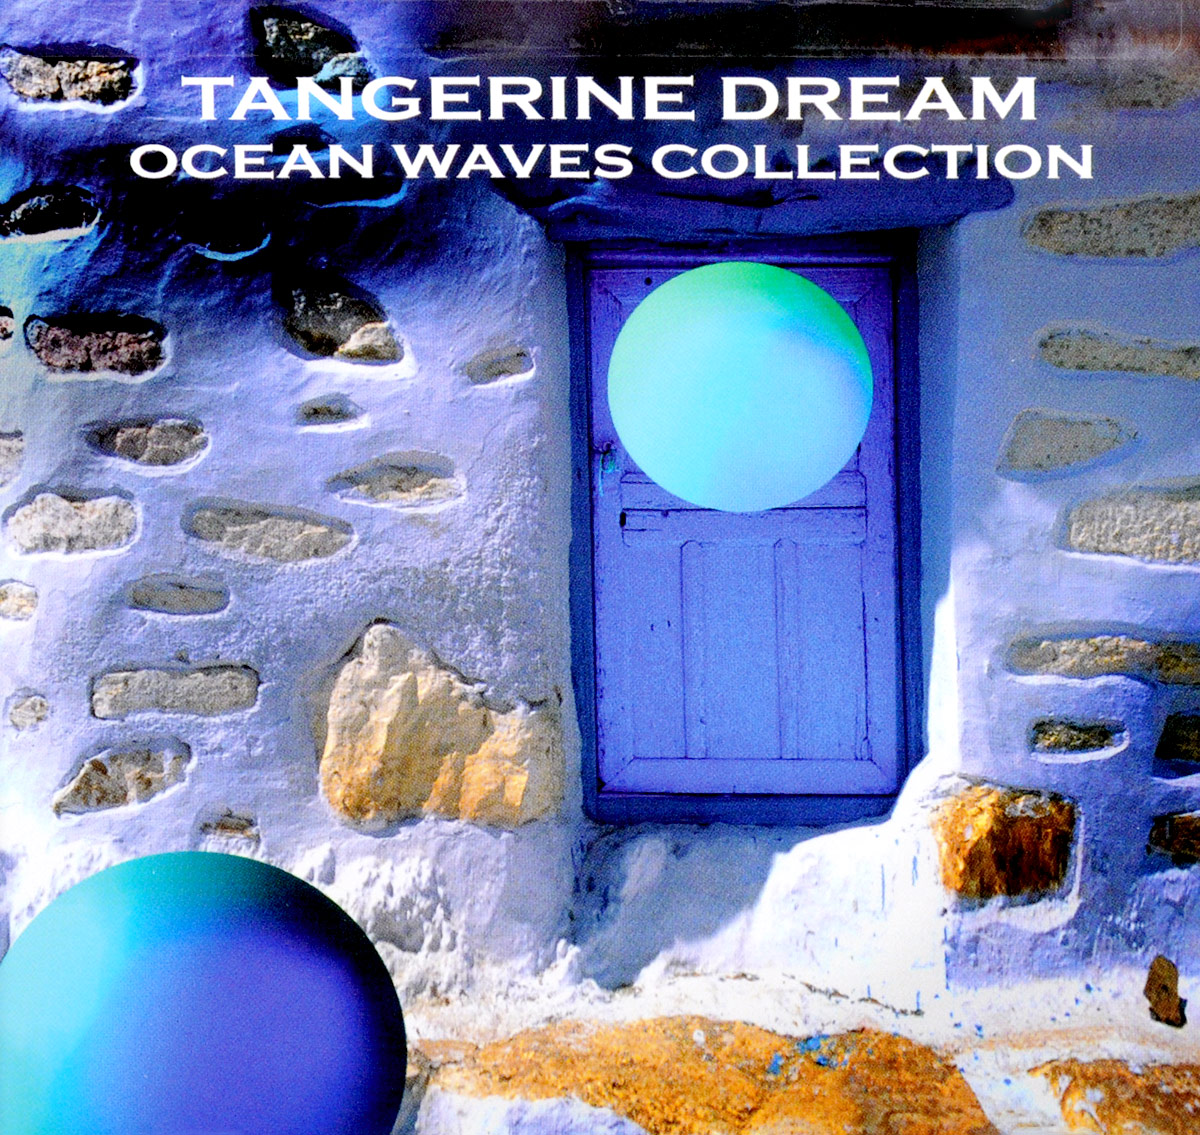 Tangerine Dream. Ocean Waves Collection